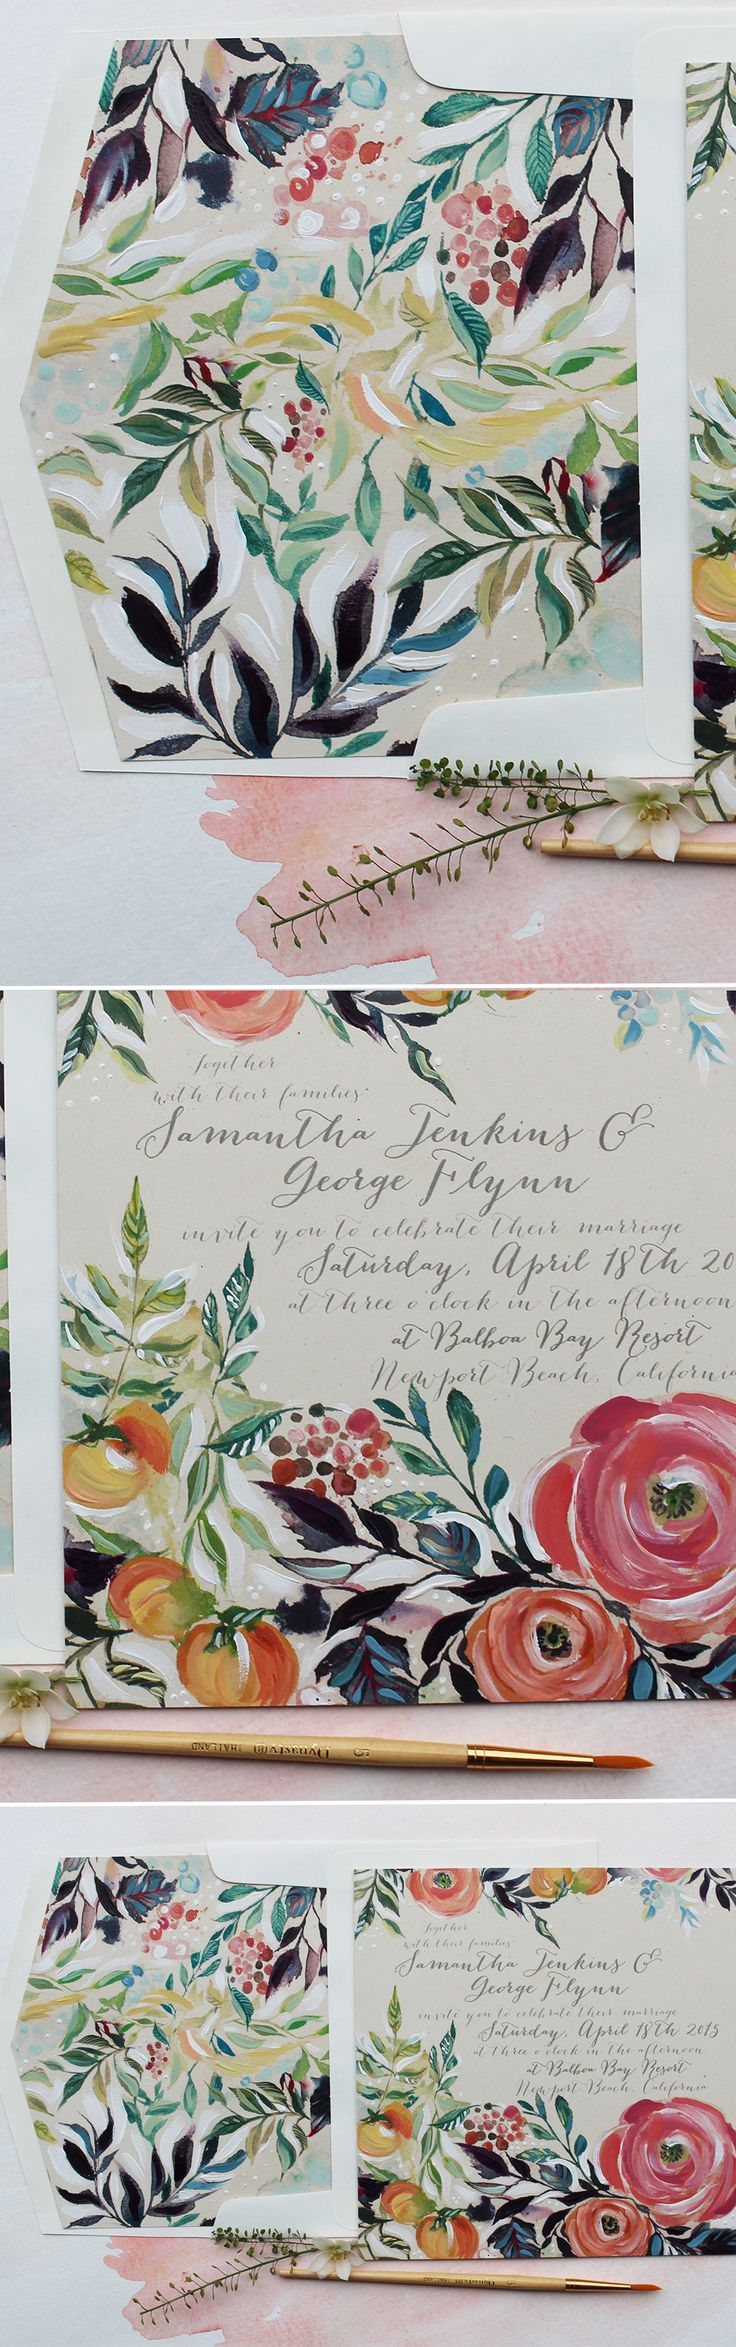 759 Best Invites Stationery Images On Pinterest Graphics